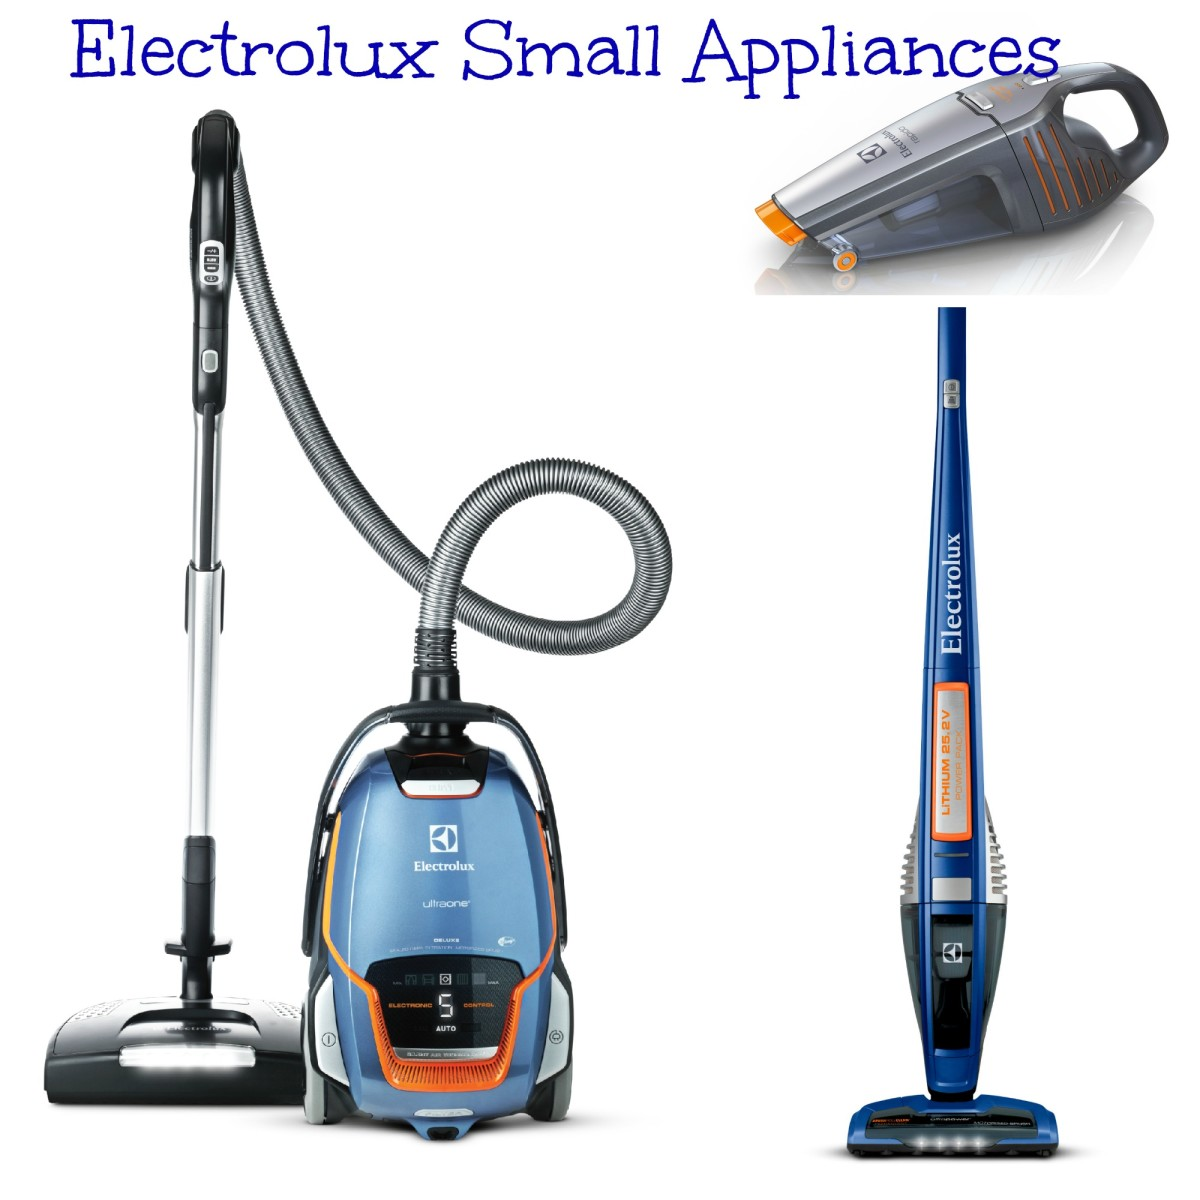 electrolux small appliances